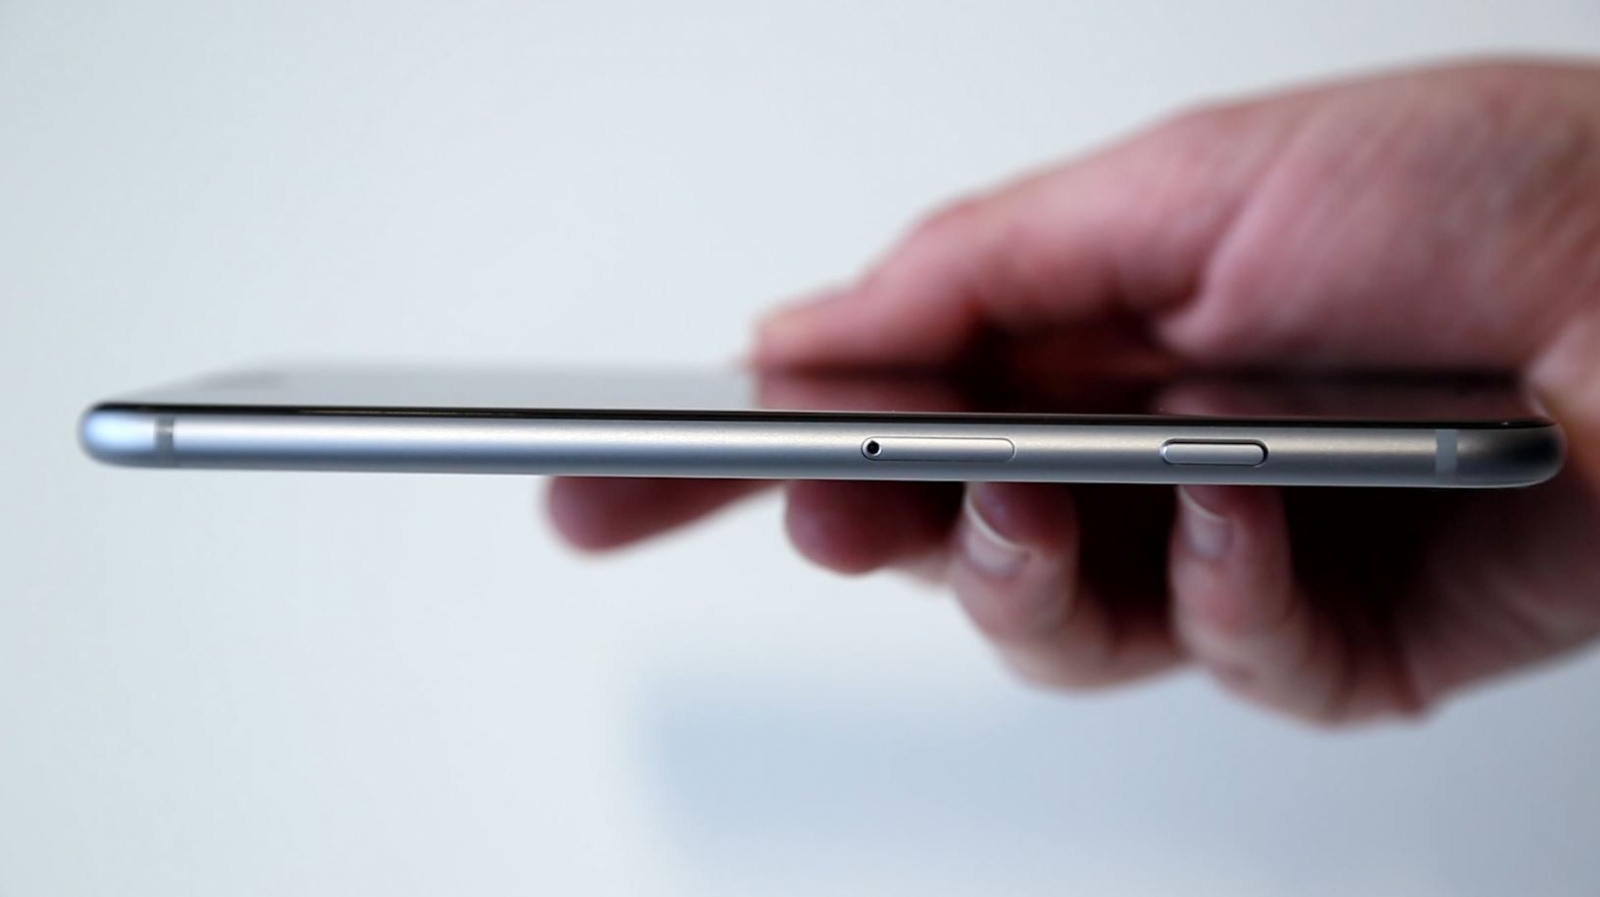 iPhone 6 Plus Review - Apple Proves That Big is Beautiful